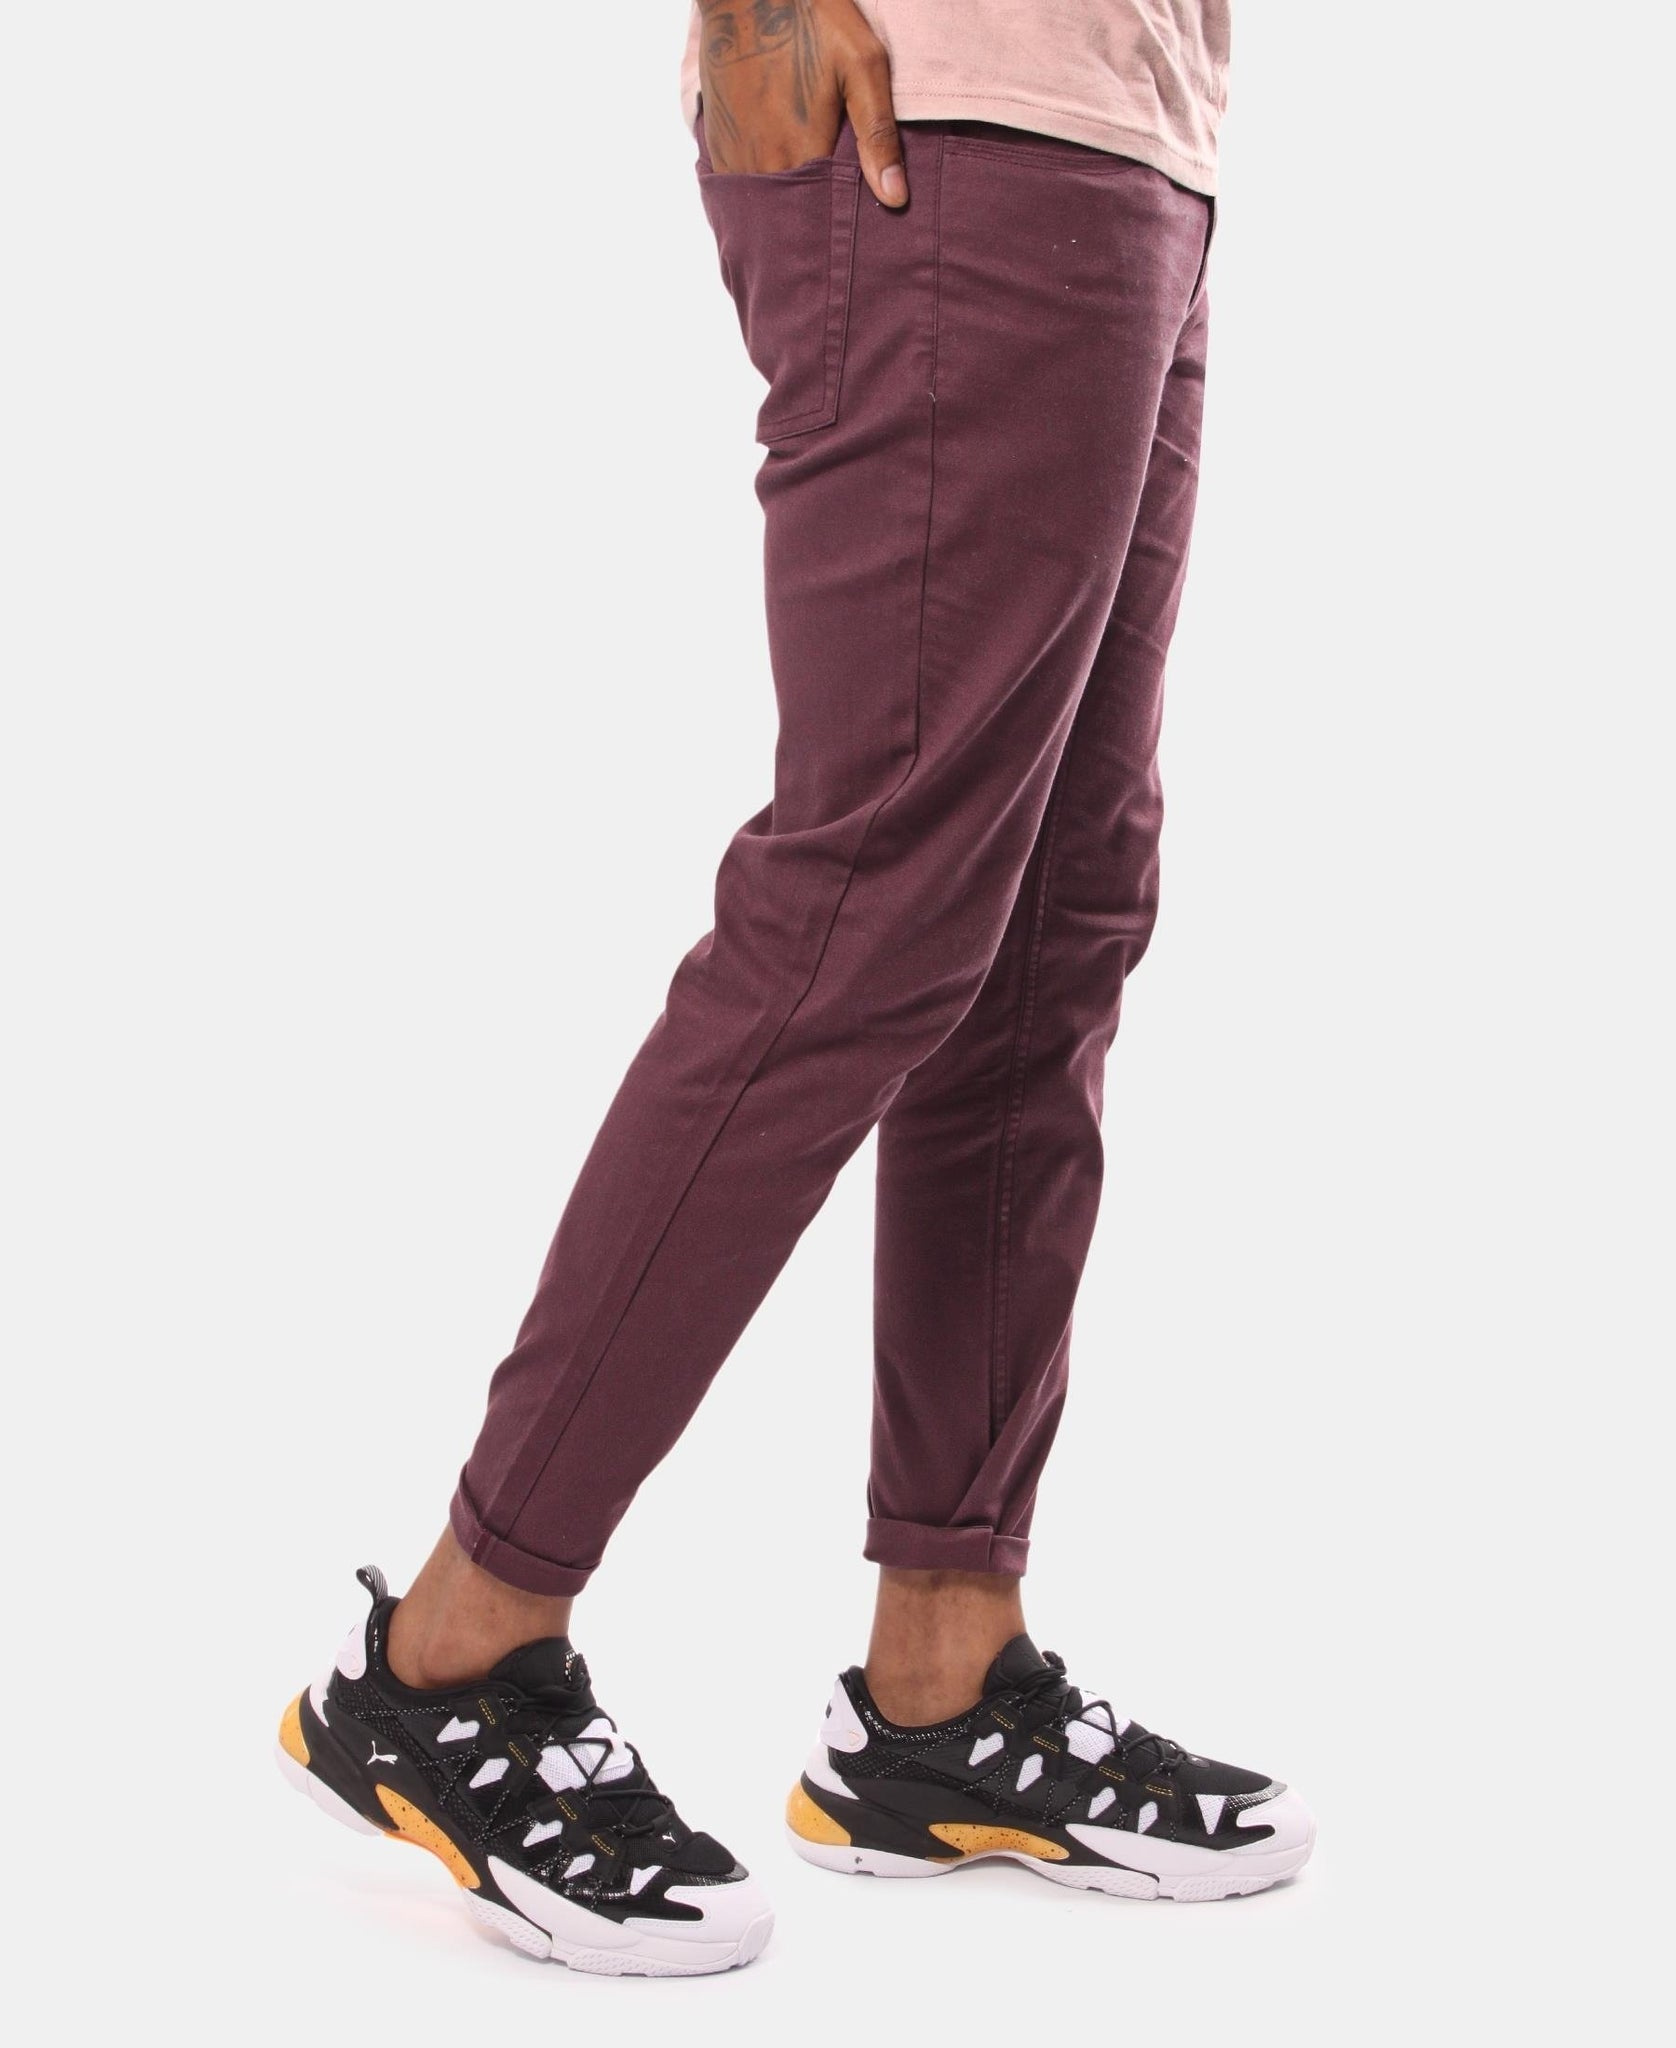 Men's Casual Pants - Maroon